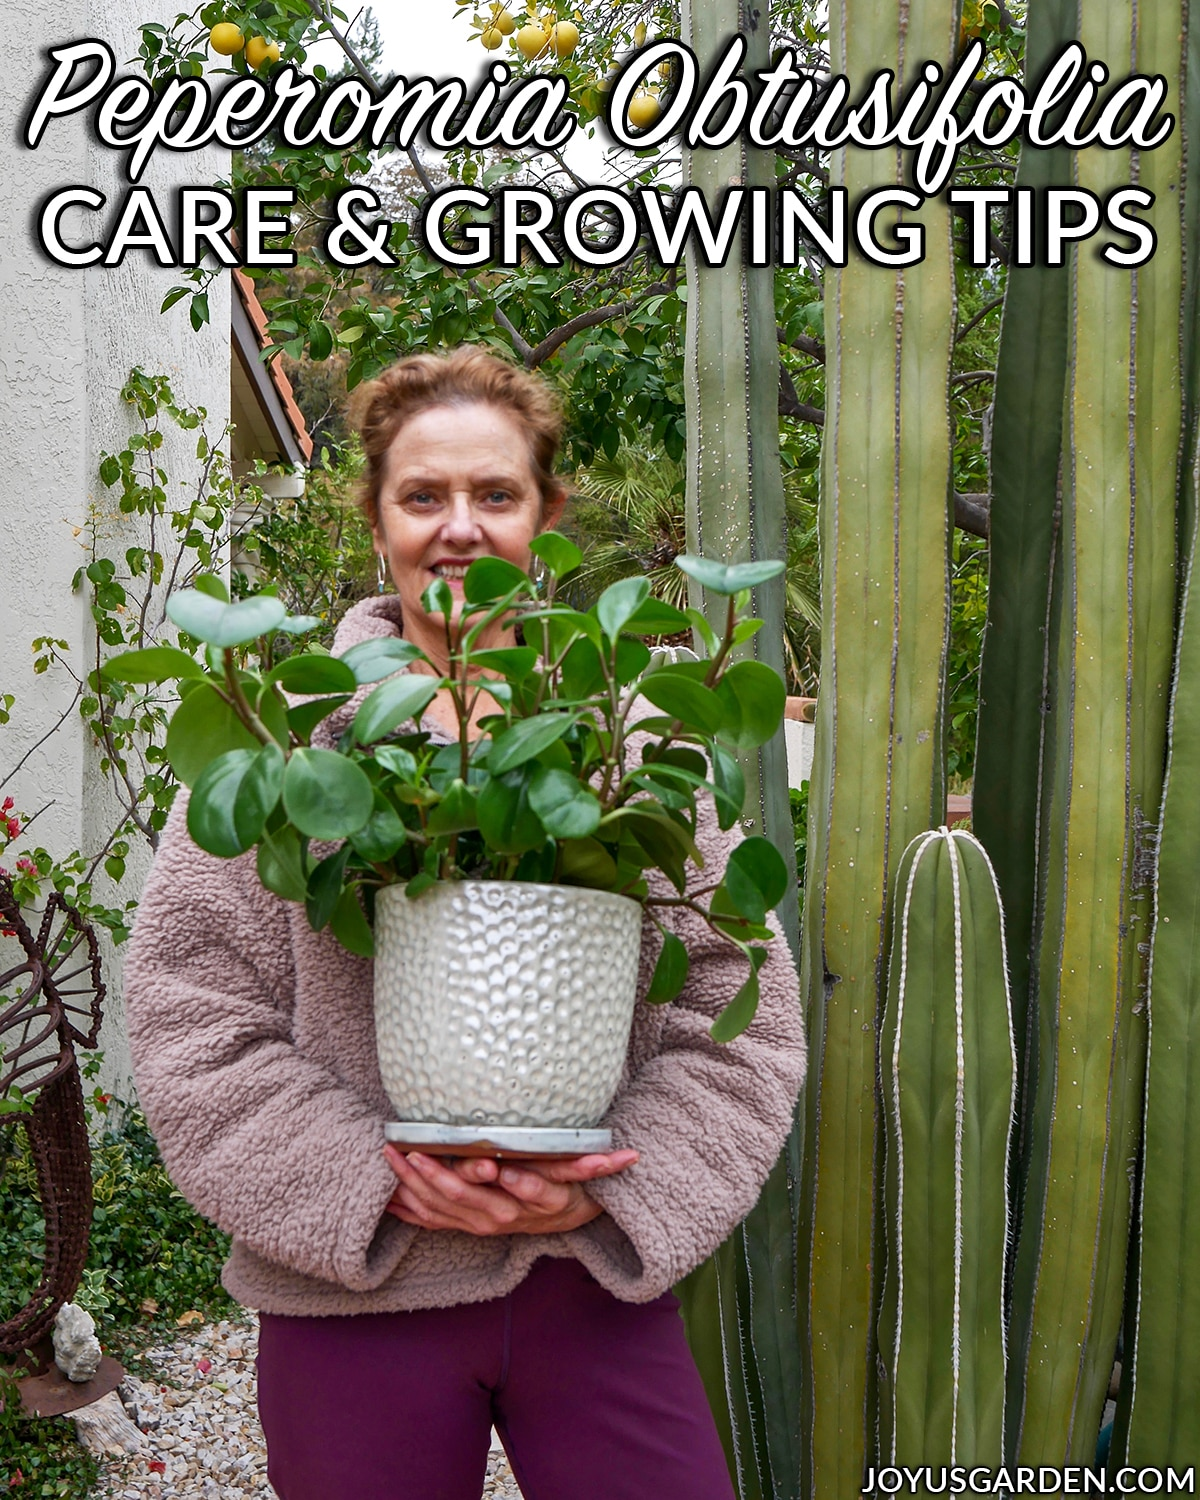 nell foster holds a peperomia obtusifolia baby rubber plant in a white ceramic next to a cactus